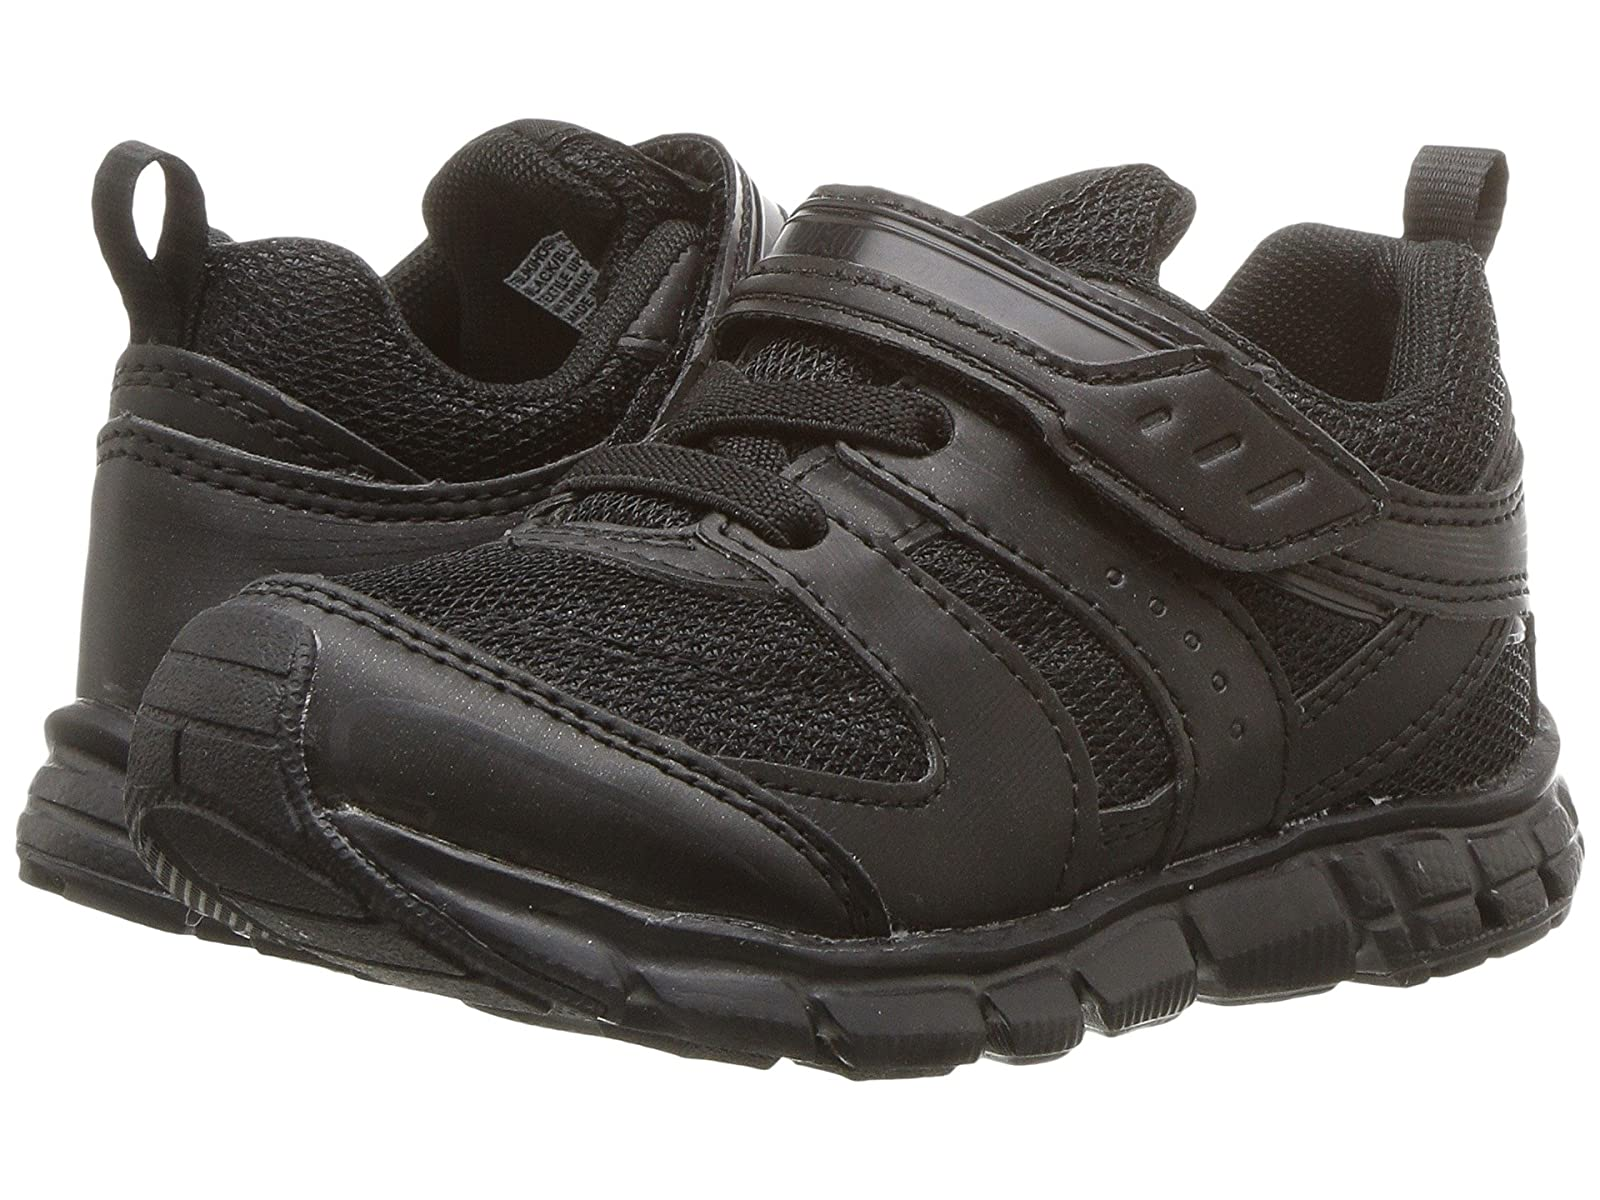 Tsukihoshi Kids Velocity (Toddler/Little Kid)Atmospheric grades have affordable shoes